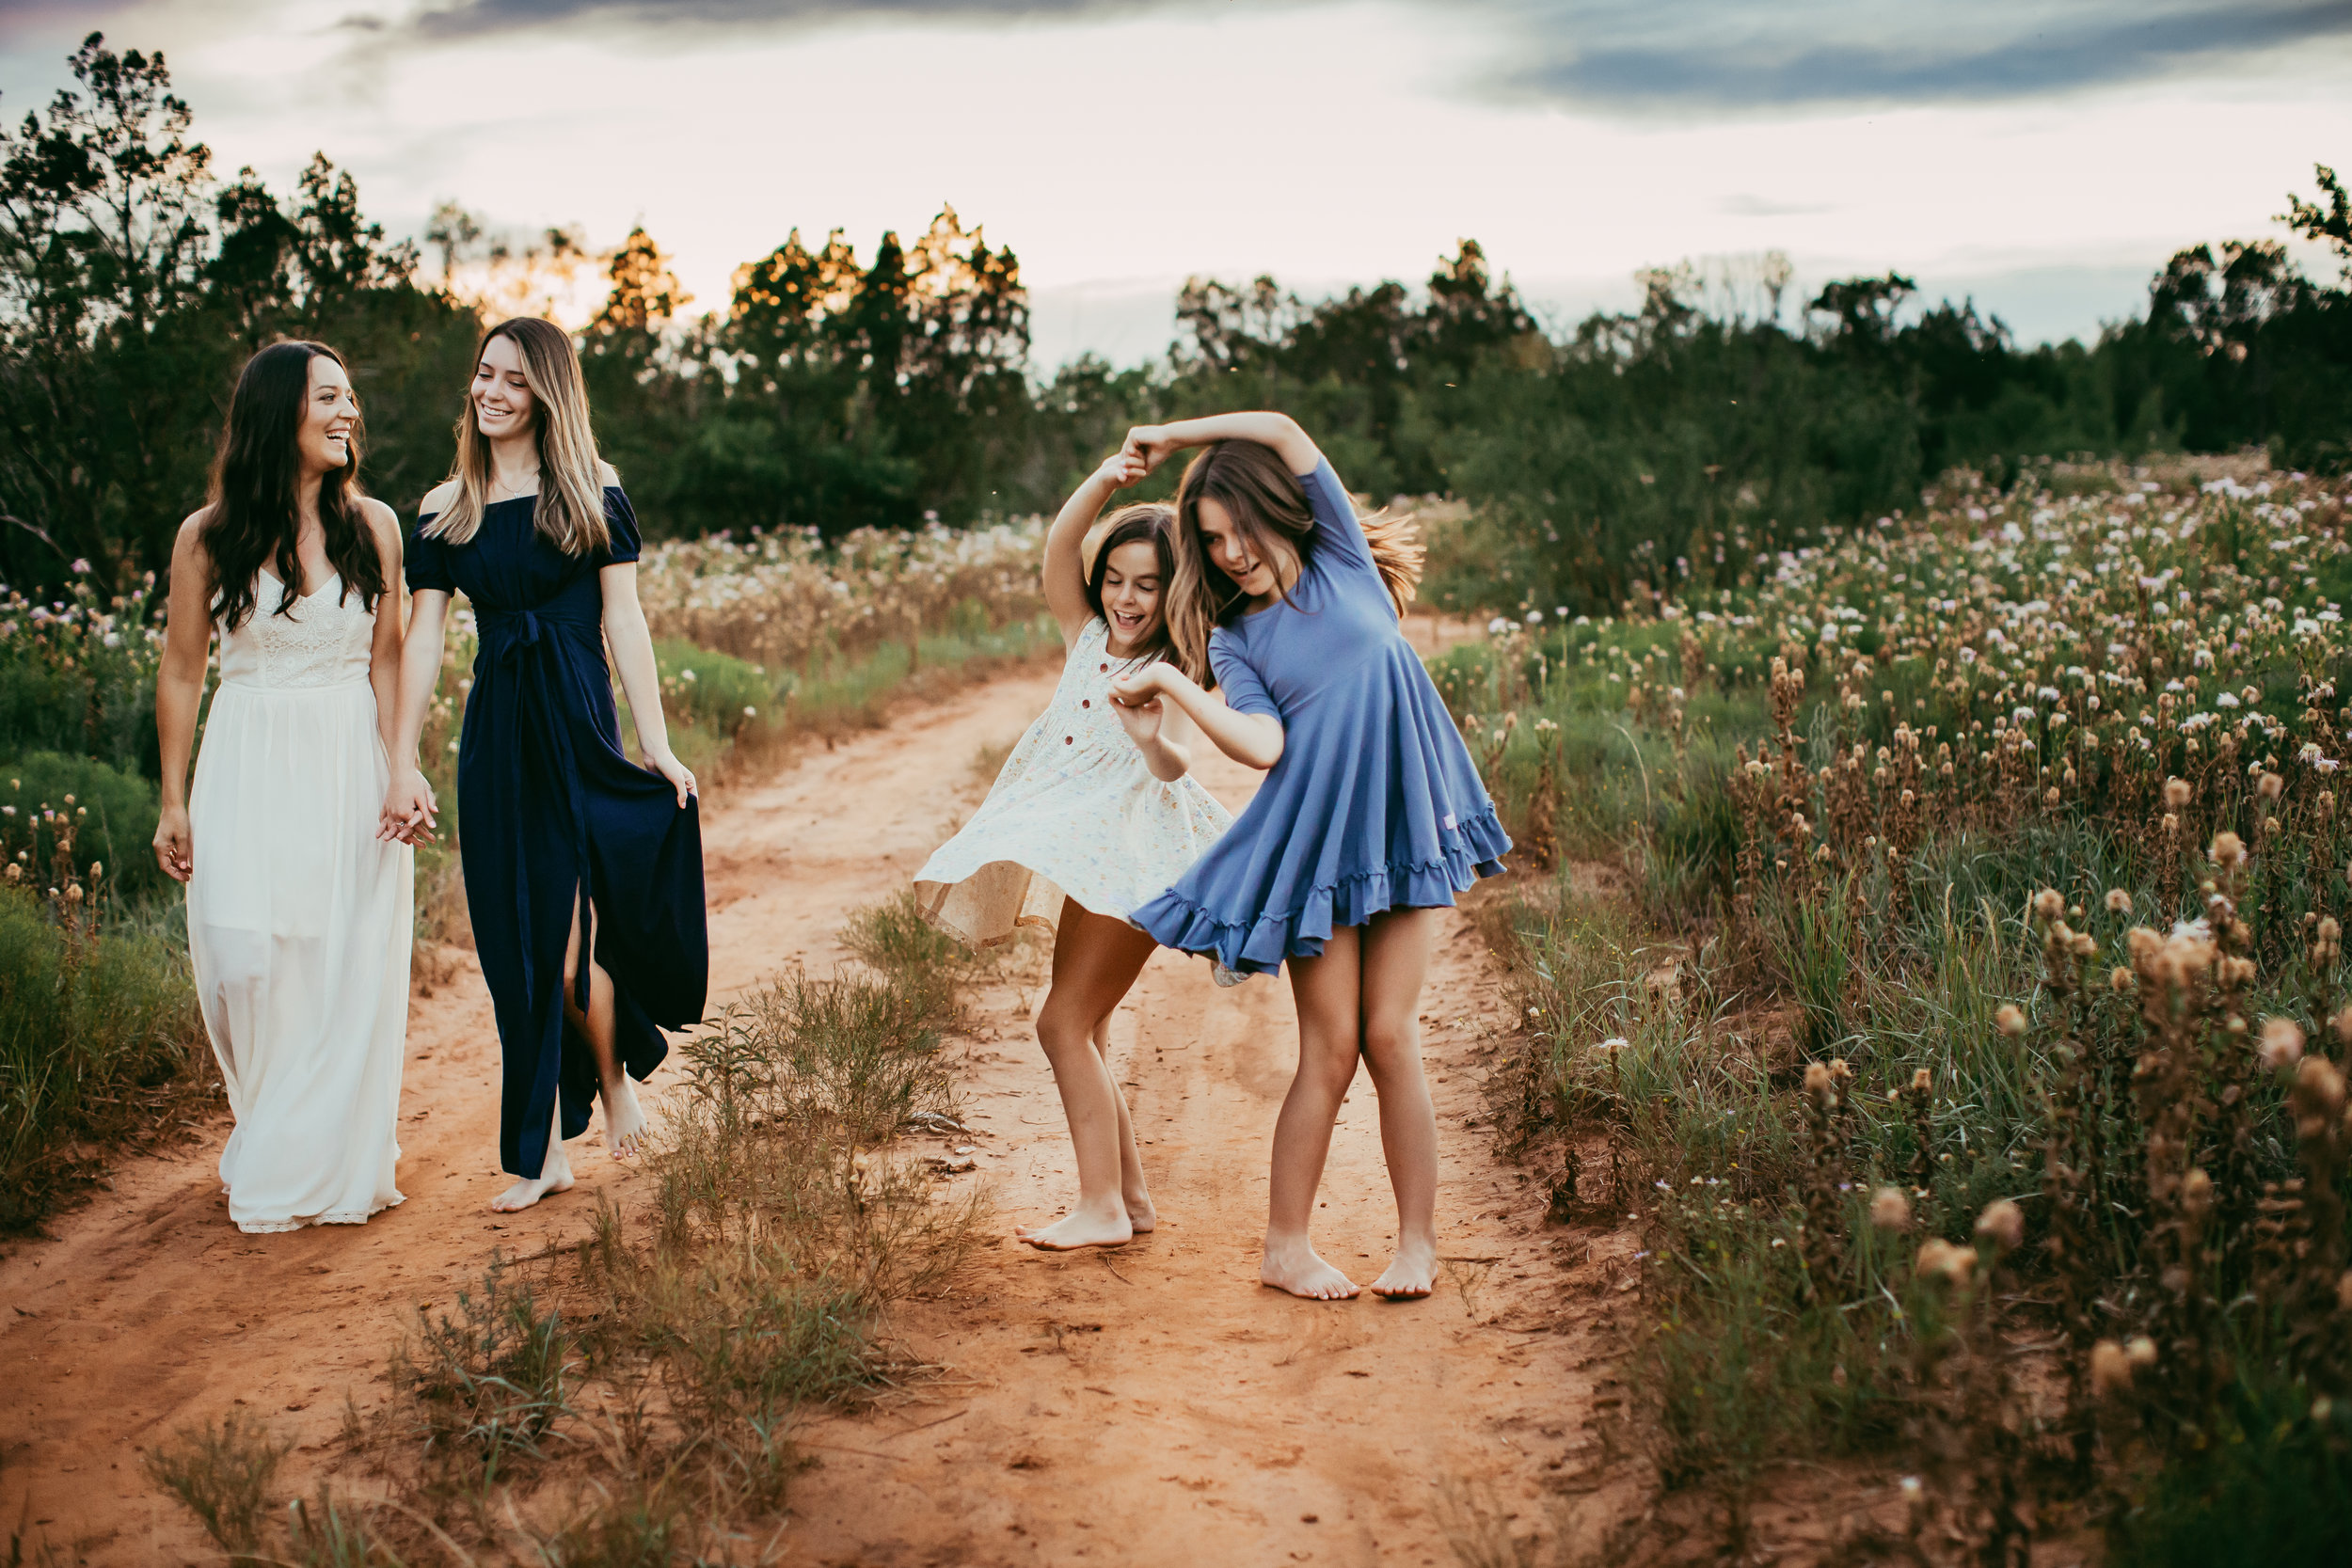 Dancing together down this dirt path between beautiful fields of wildflowers #tealawardphotography #texassummerphotographer #pictureseason #amarillophotographer #amarillofamilyphotographer #emotionalphotography #engagementphotography #couplesphotography #pickingaseasonforphotosessions #whatsimportant #everythingtogether #pickingcolorsforphotos #summerphotos #greeneryinphotos